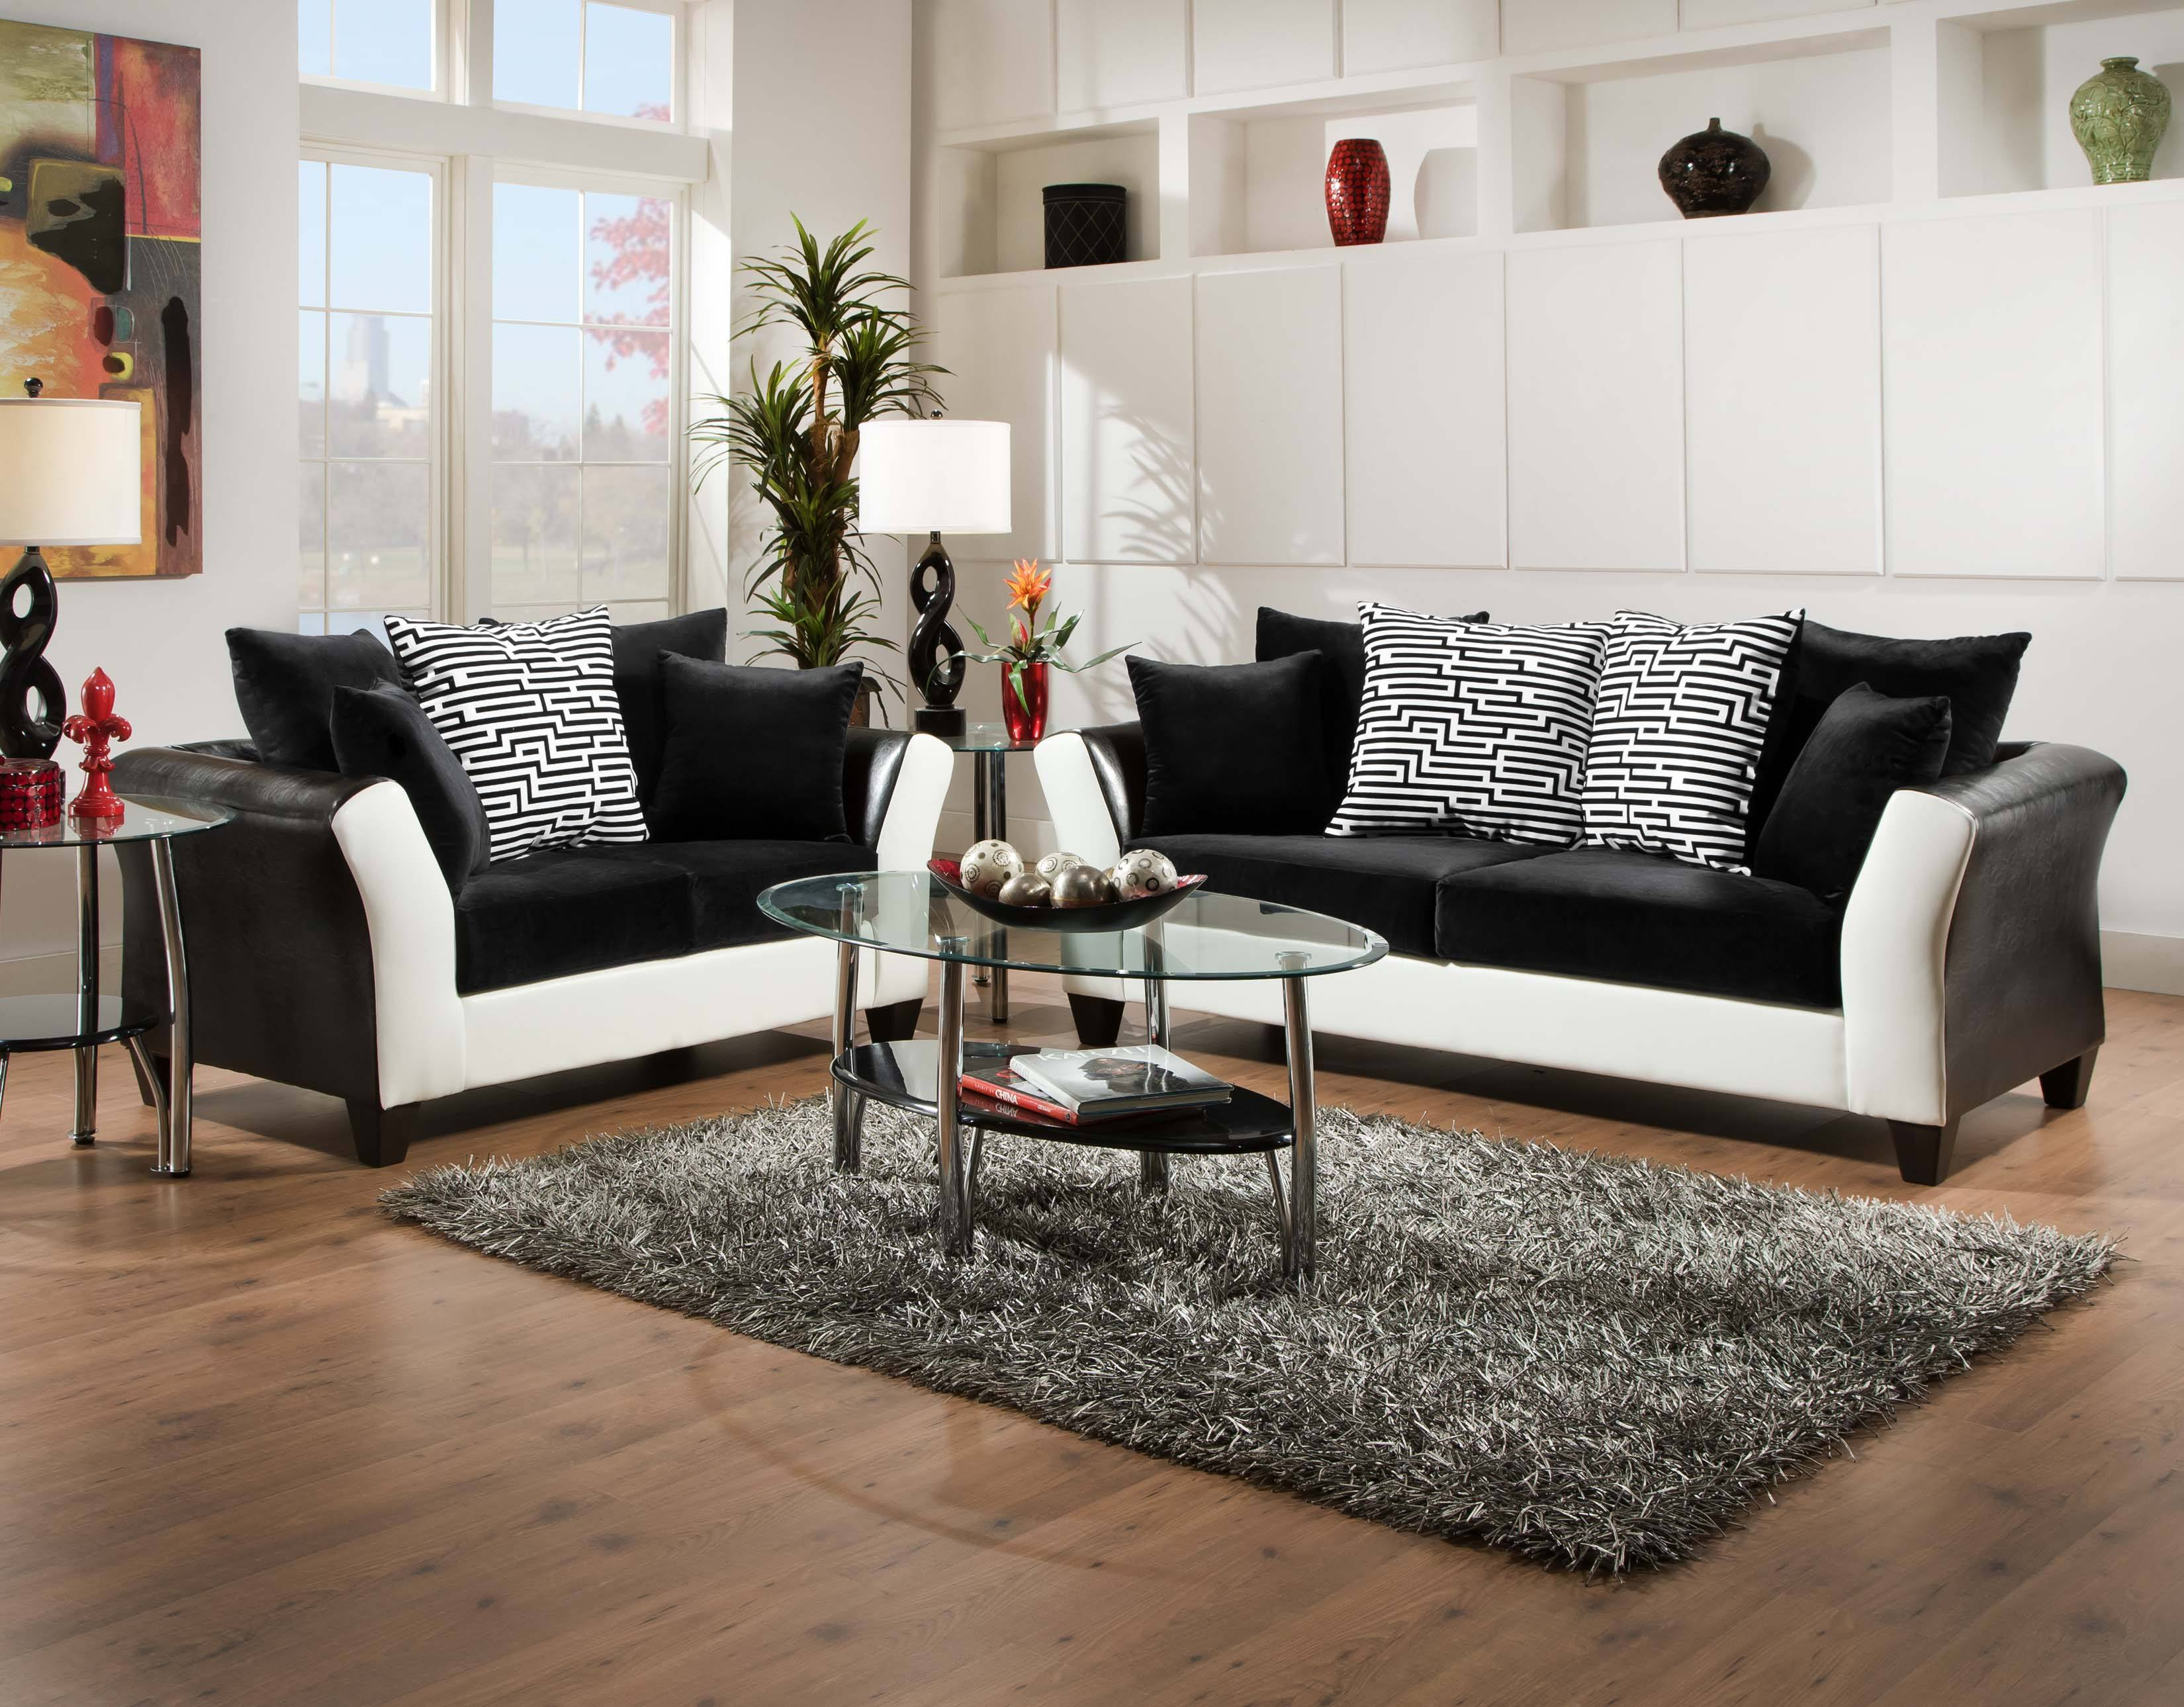 Add Sophistication to any Room with Black and White Design Elements